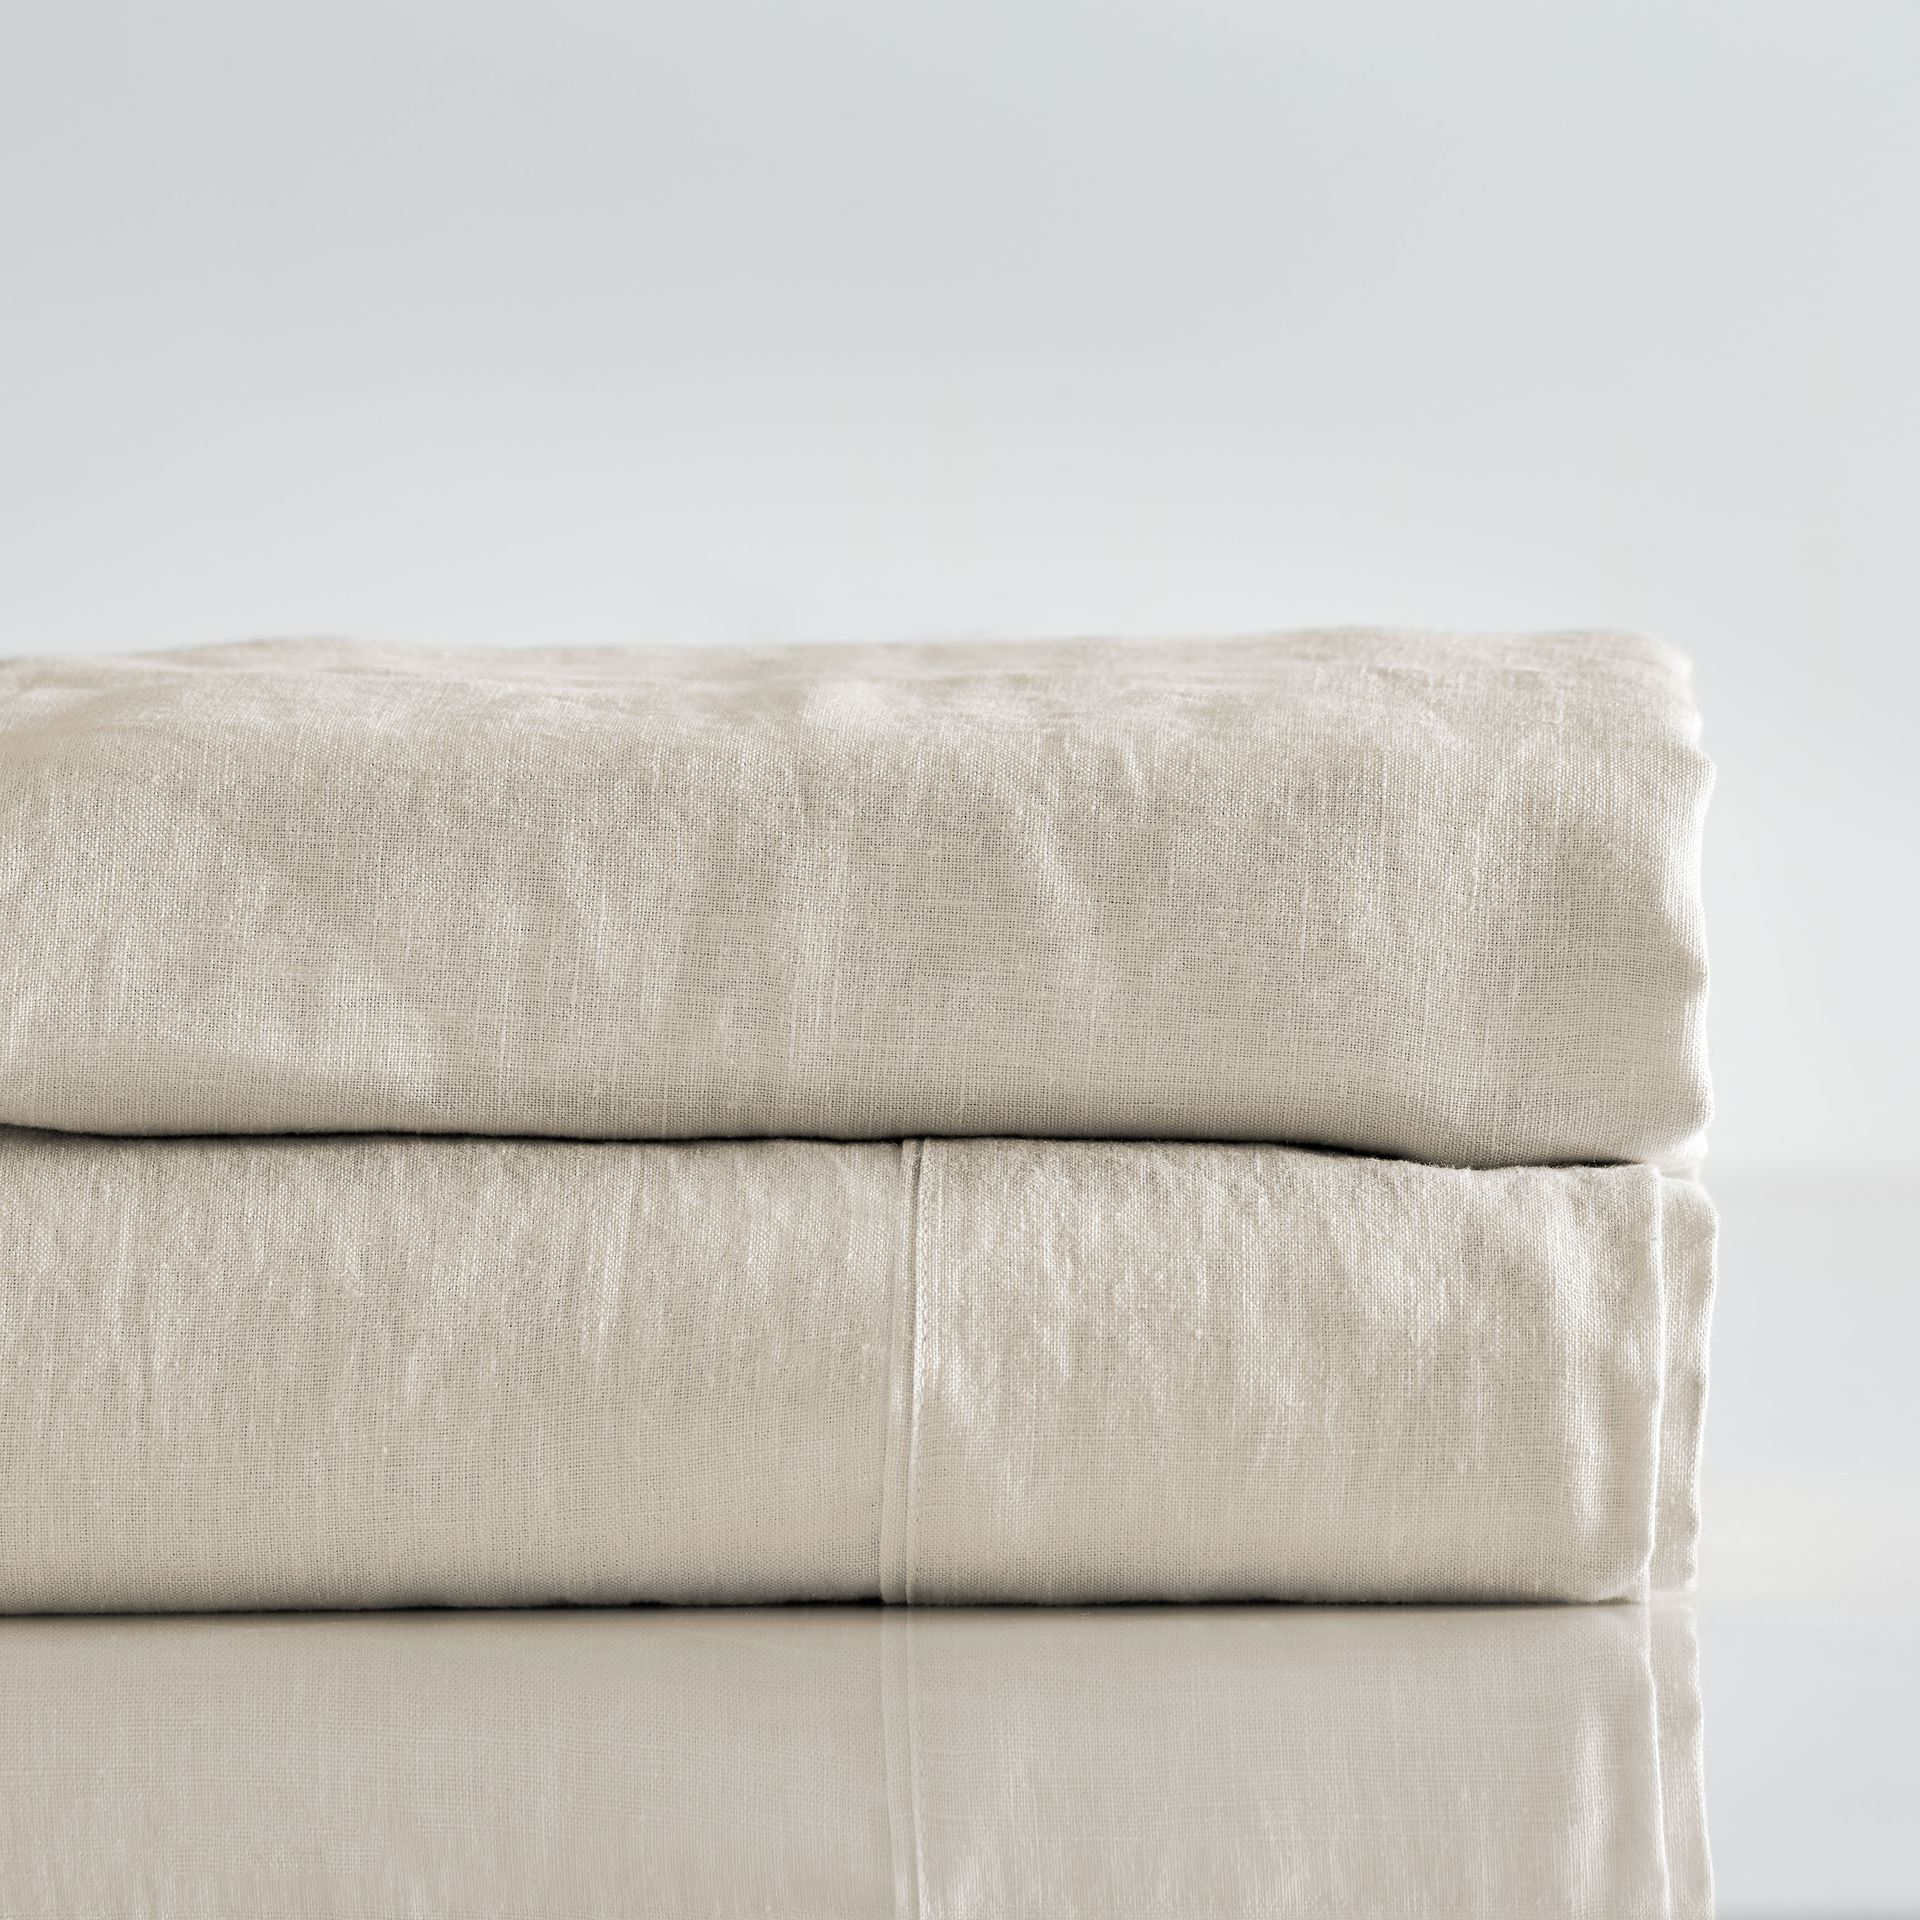 Picture of Pure Linen Pre Washed Sheet Set – Sand